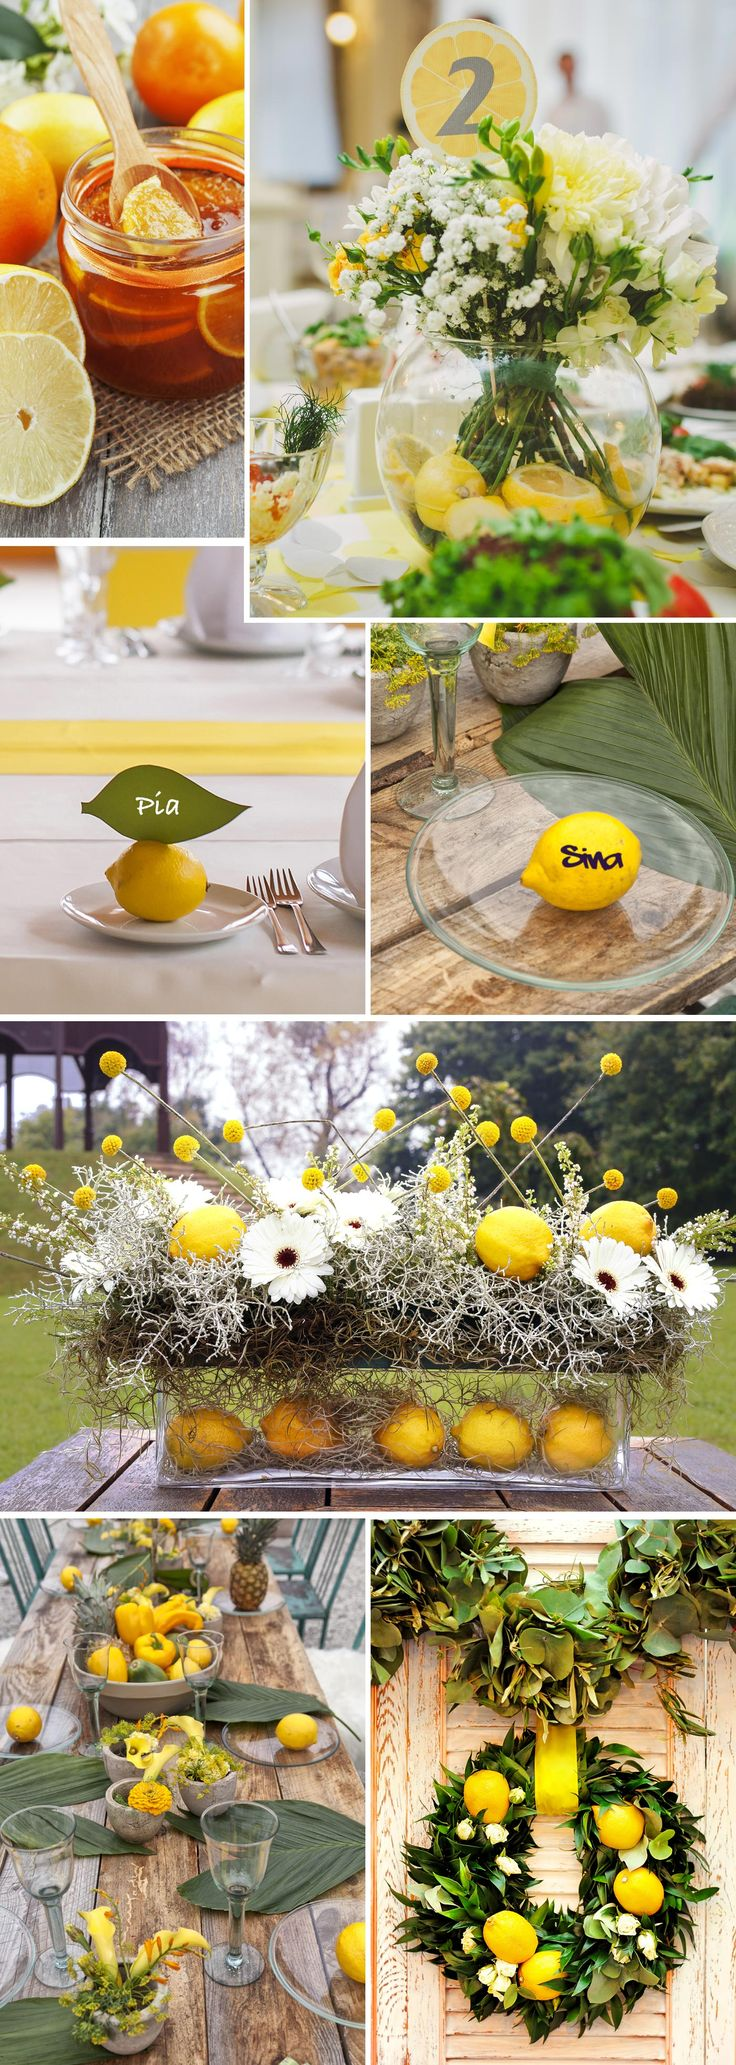 10 images about tischdeko on pinterest simple craft ideas centerpieces and chen - Sommer tischdeko ...